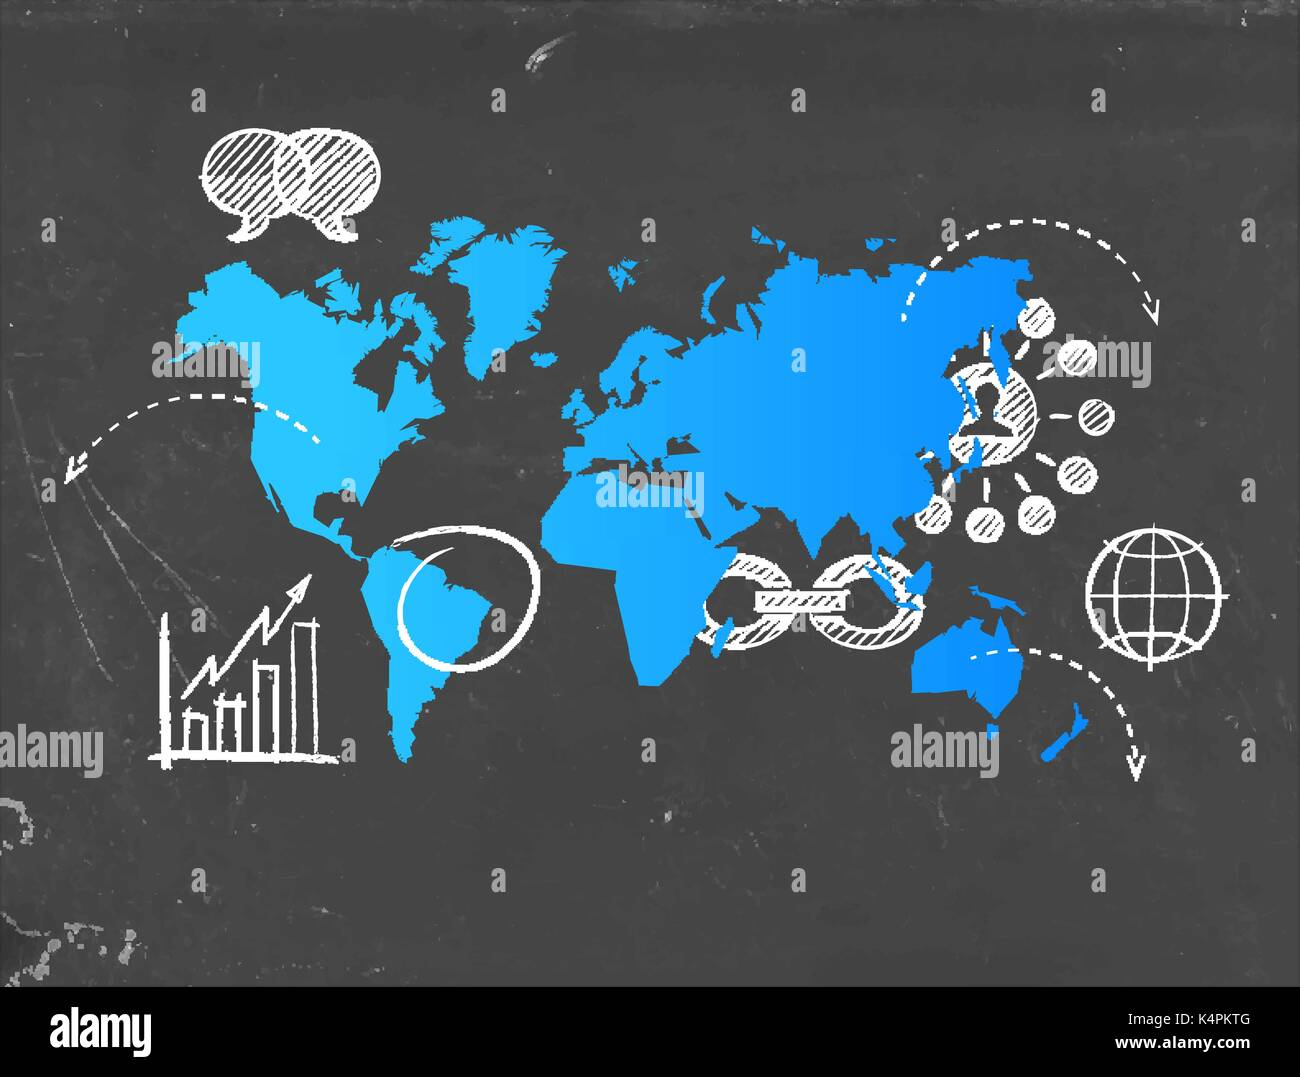 Social media world map template with modern internet business icons social media world map template with modern internet business icons drawn on blackboard international technology communication concept eps10 vector gumiabroncs Images